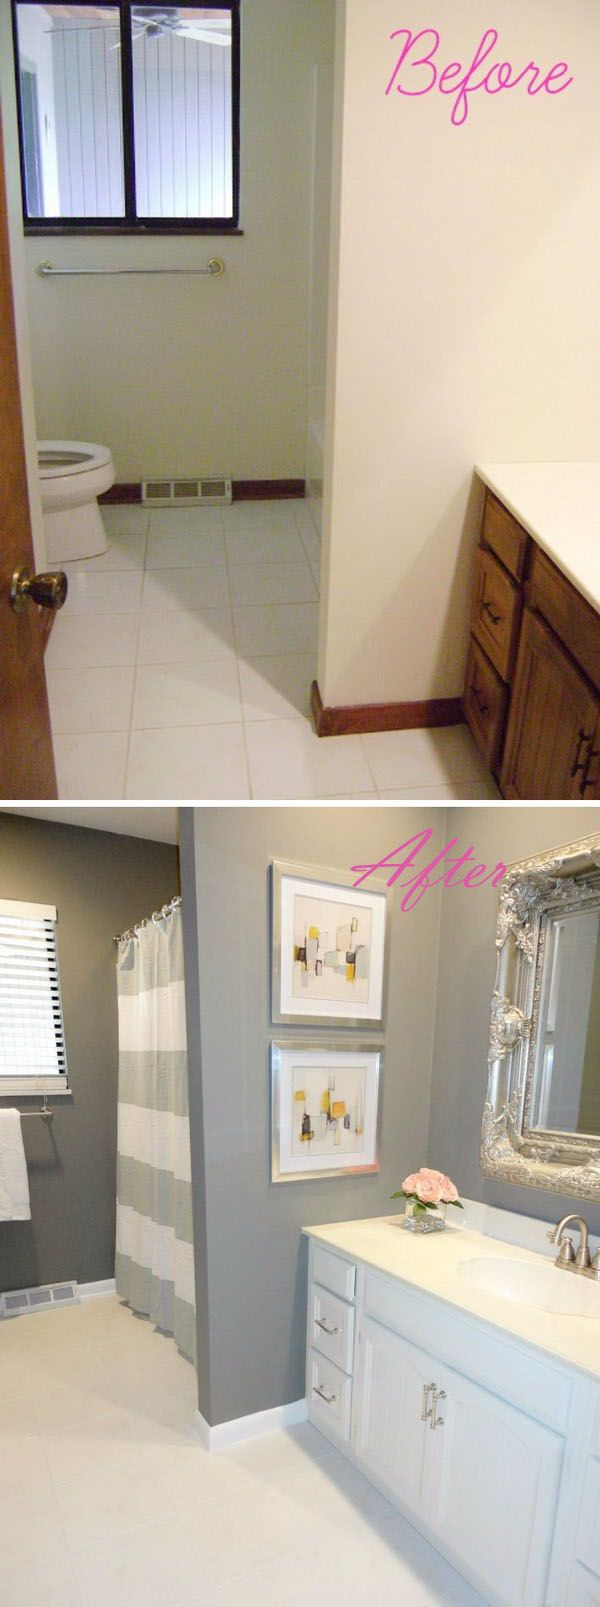 Picture Gallery For Website Before and After Awesome Bathroom Makeovers